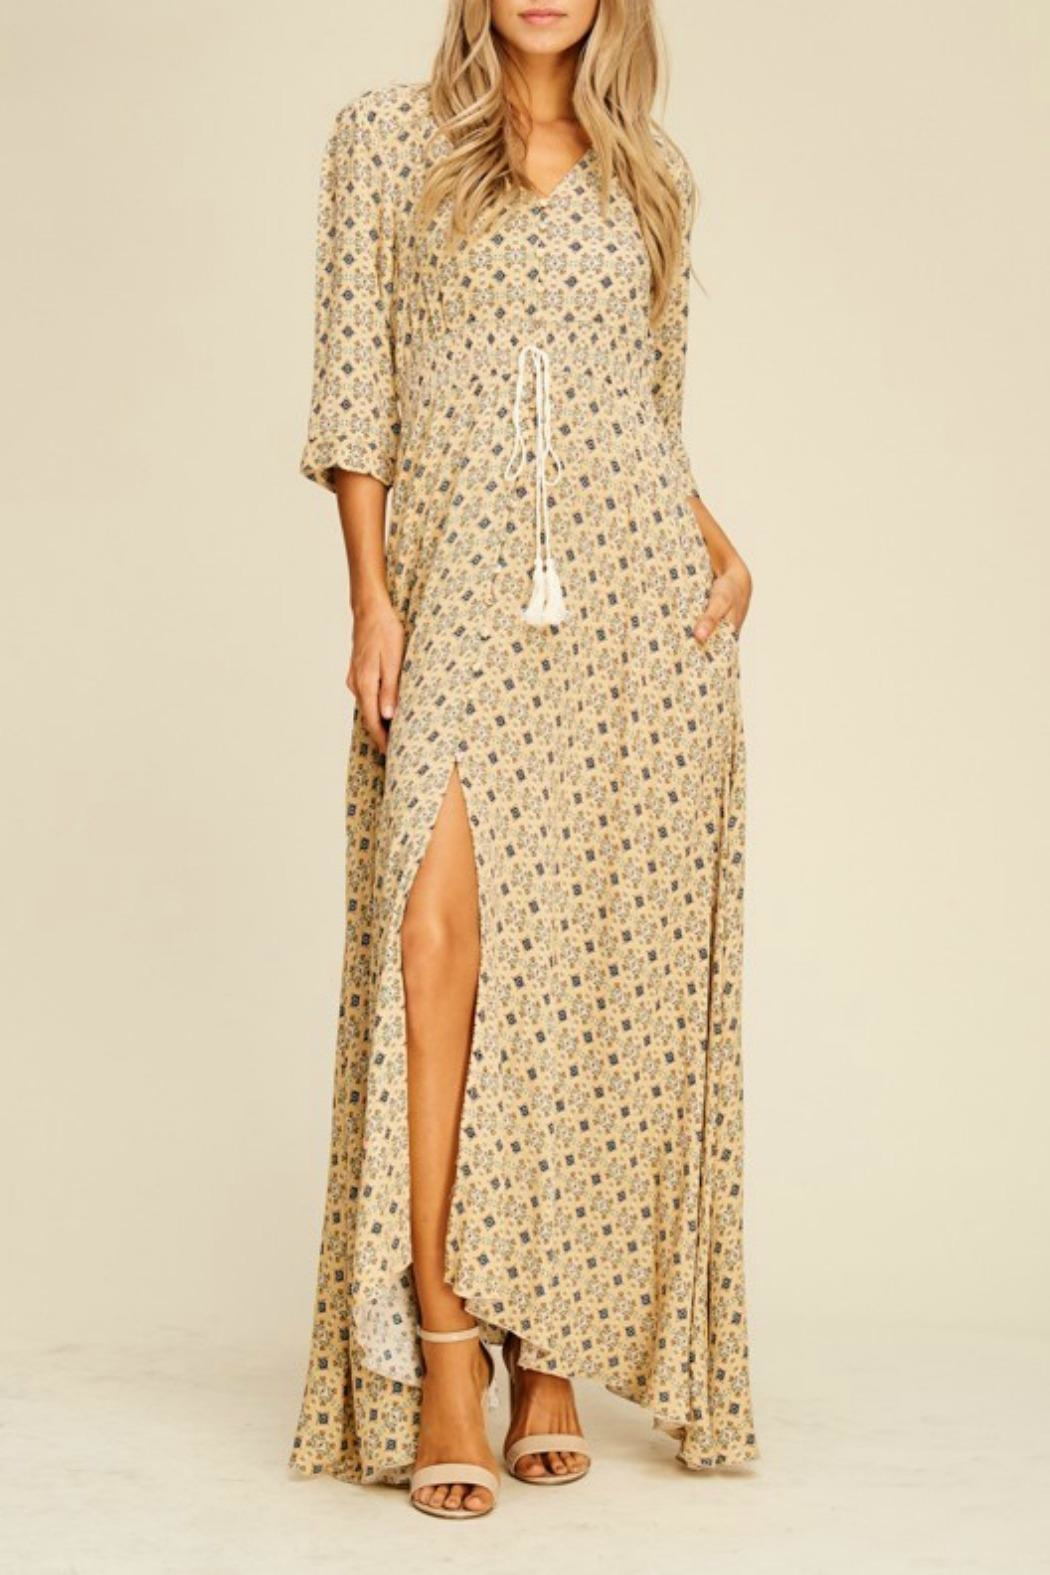 MHGS Annabelle Maxi Dress - Main Image